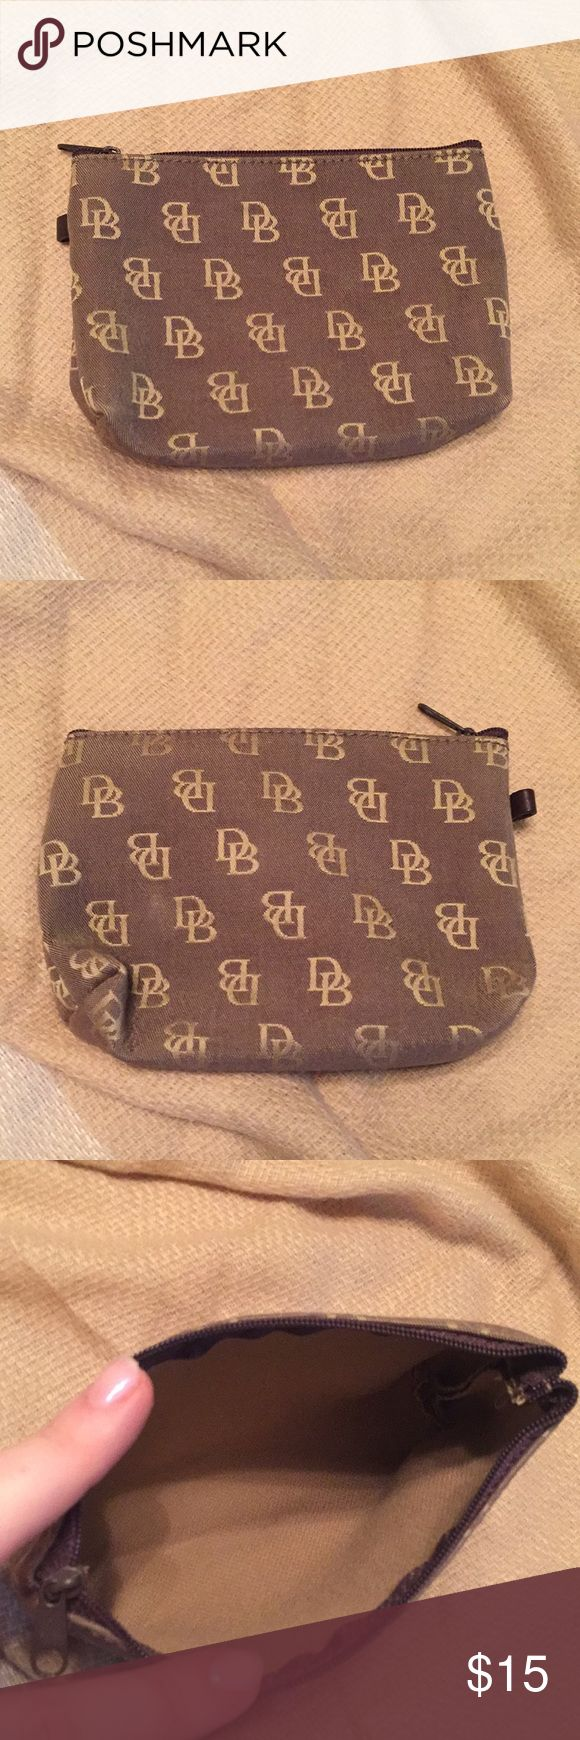 🚨Moving Sale🚨 Dooney & Bourke Mini Makeup Bag Great mini Makeup Bag in. Neutral color by Dooney &  Bourke. It's great for the necessities and can easily be thrown into a drawer at work, your purse, the glove box...I'm just now realizing how many sets of necessities I have...suffice to say, it's adaptable to whatever you need it to be🙂 H:4in L:6.25in W:.5-1.75in Dooney & Bourke Bags Cosmetic Bags & Cases